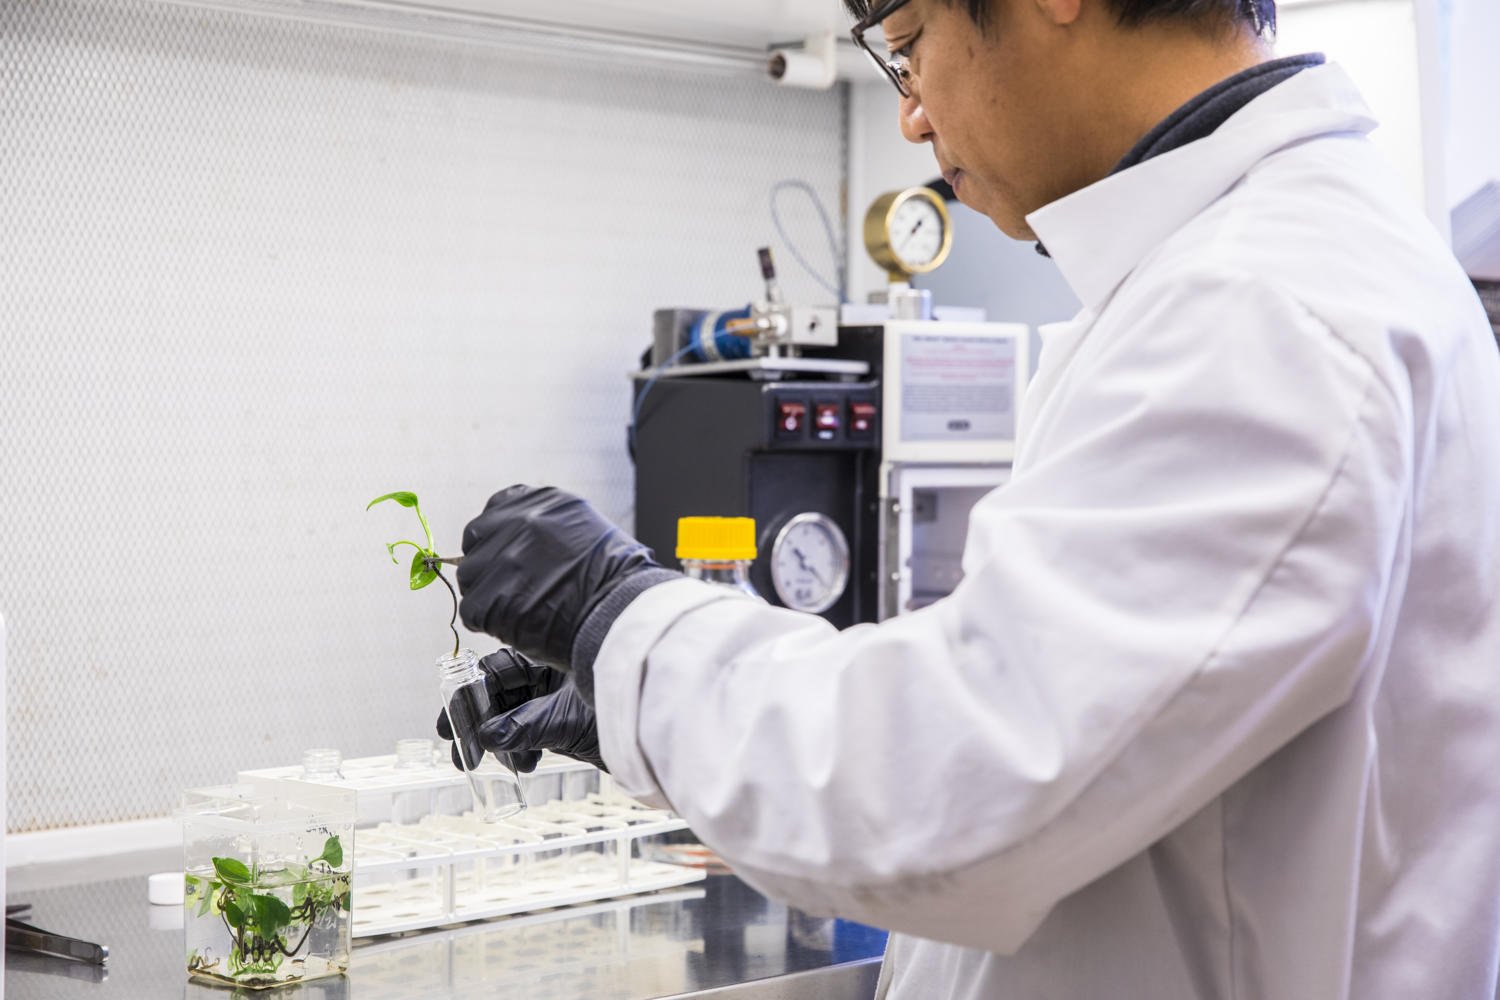 Stewart Strand and Lab assistant Long do work to genetically modify house plants to remove airborne pollutants from the air space